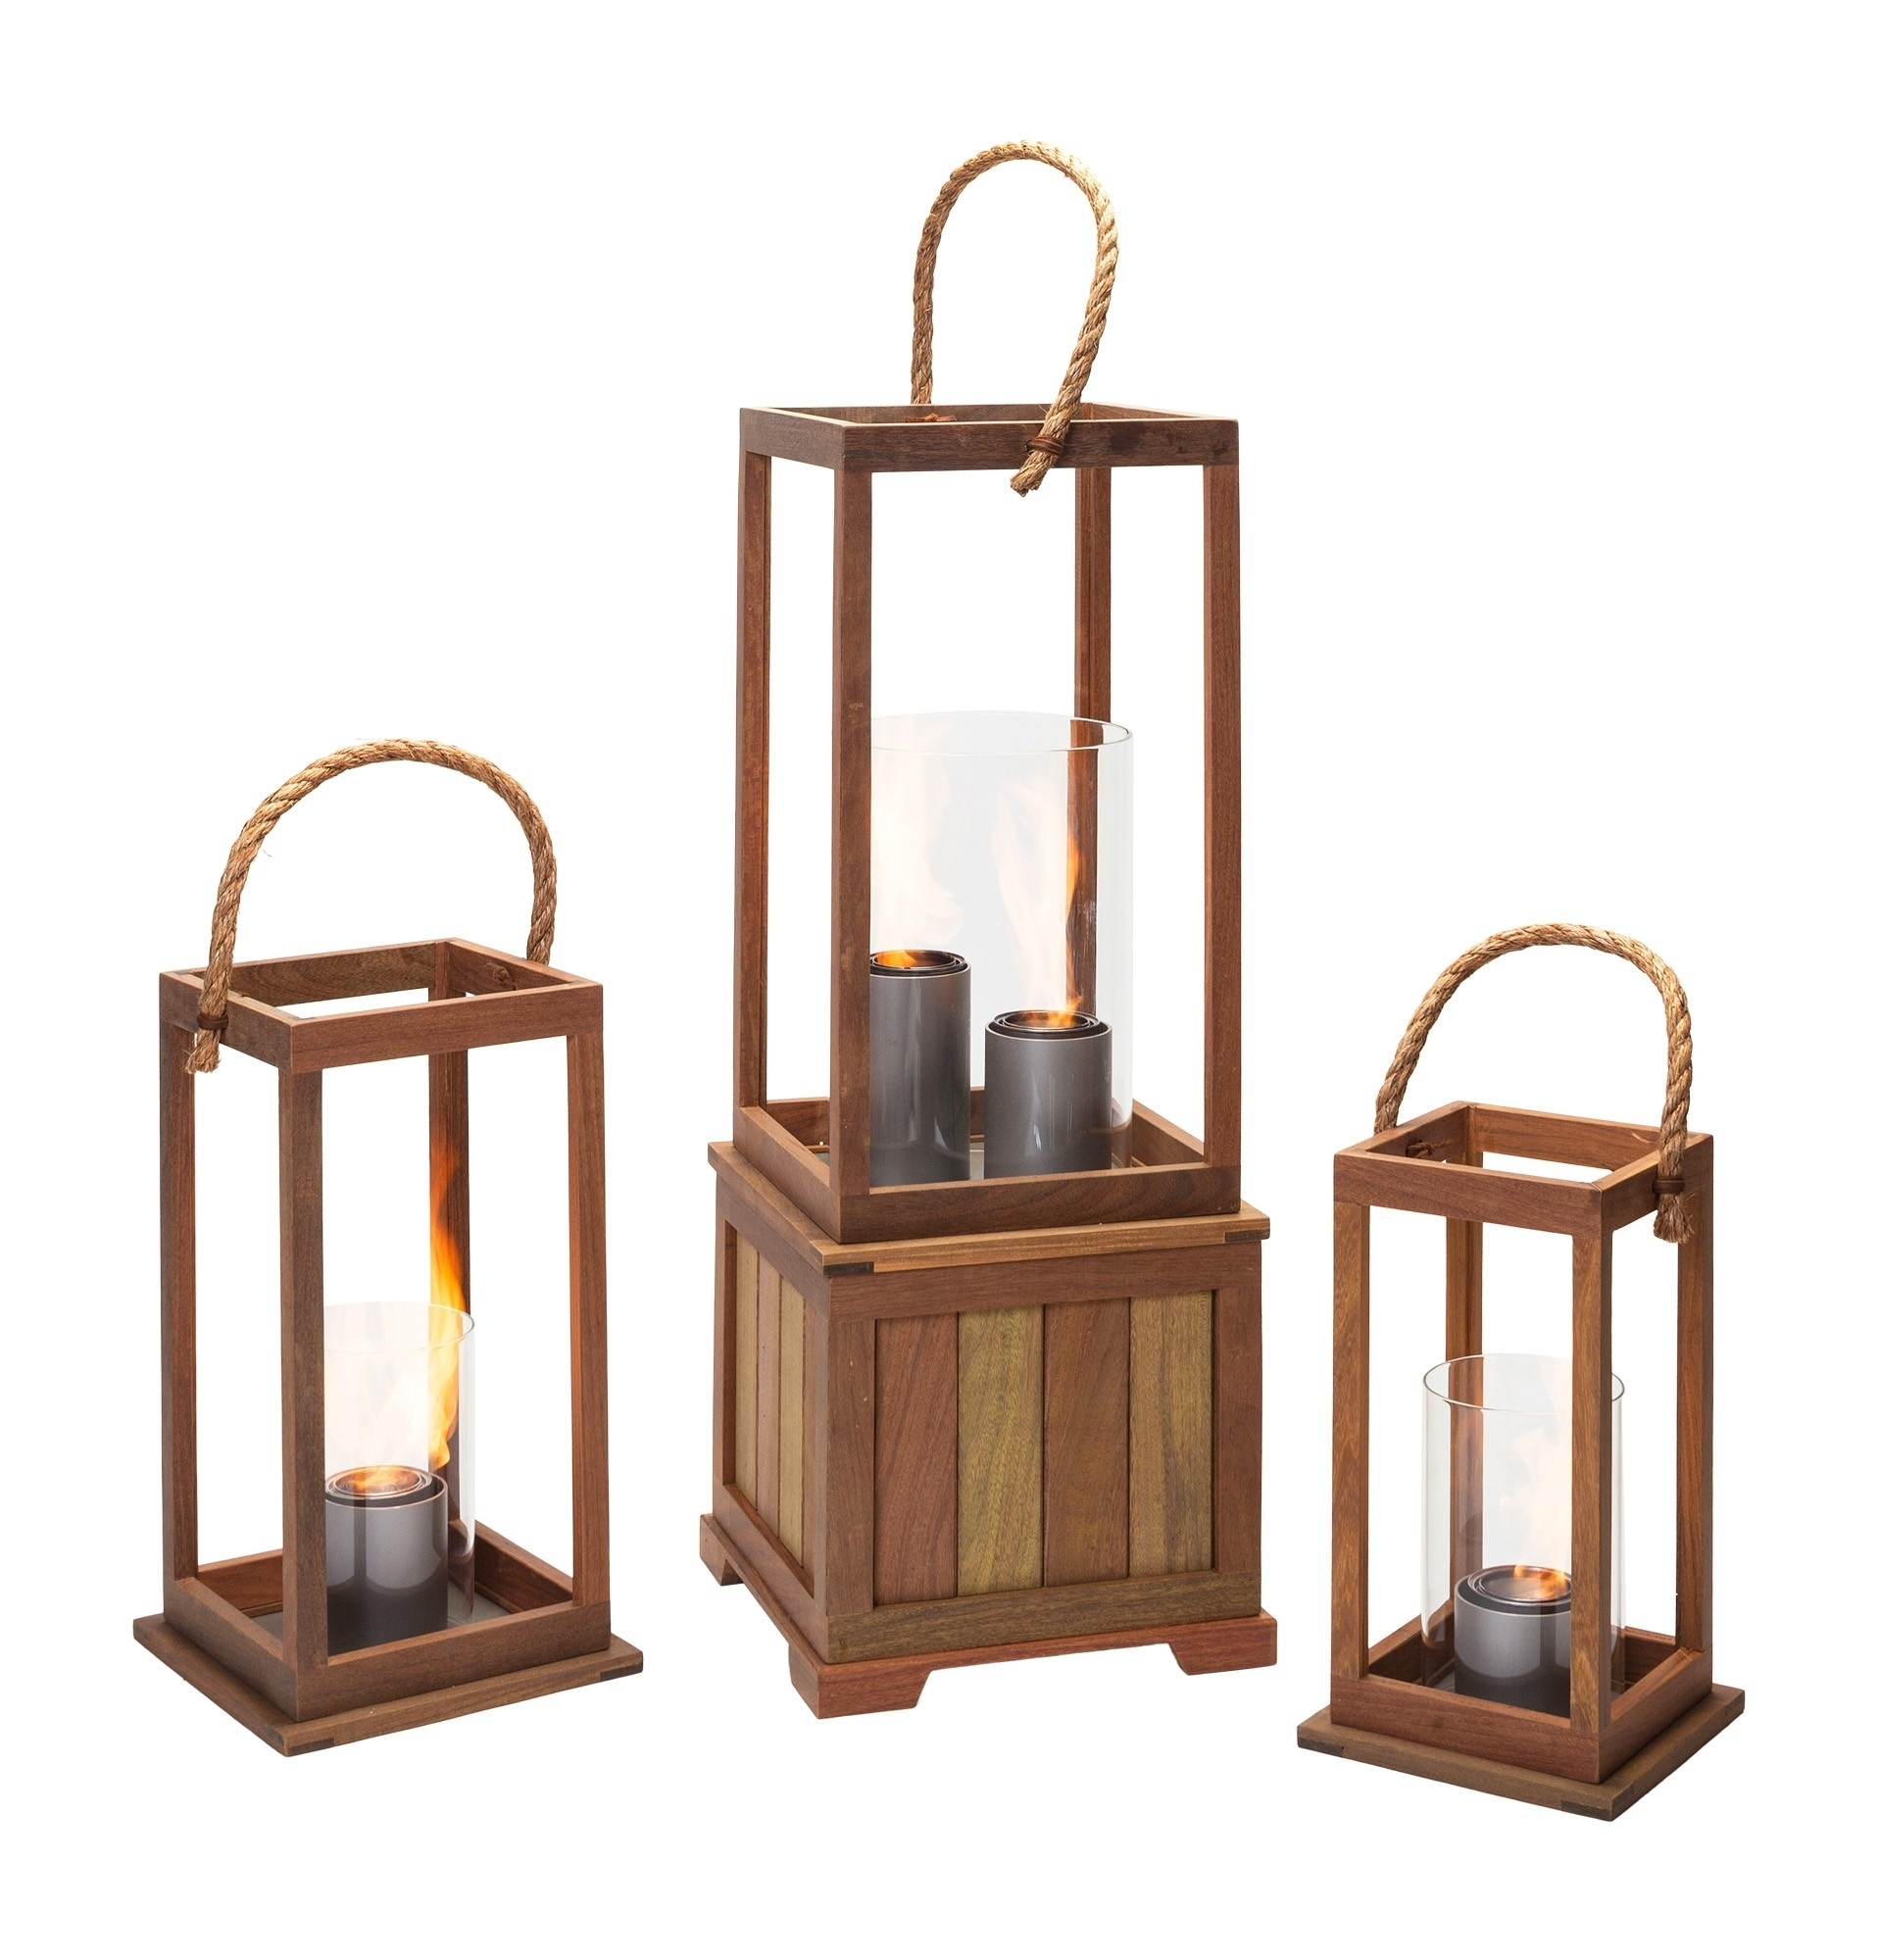 Sonoma 17 Inch Outdoor Lantern In Ipe Woodnorthcape Fire Intended For Outdoor Gel Lanterns (View 13 of 20)